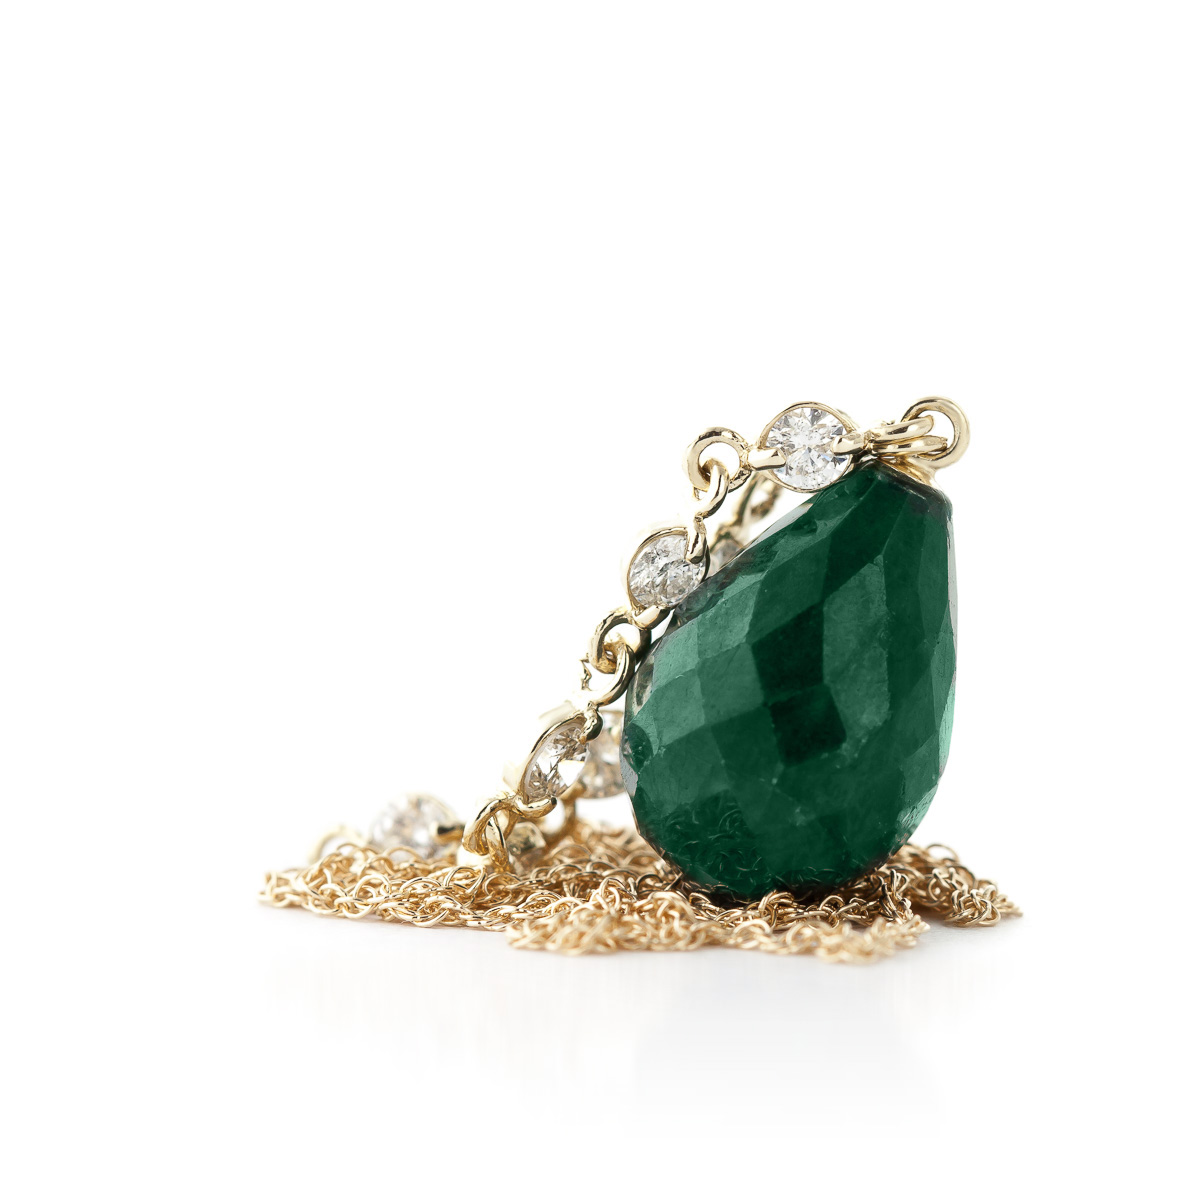 Emerald and Diamond Pendant Necklace 14.8ct in 14K Gold